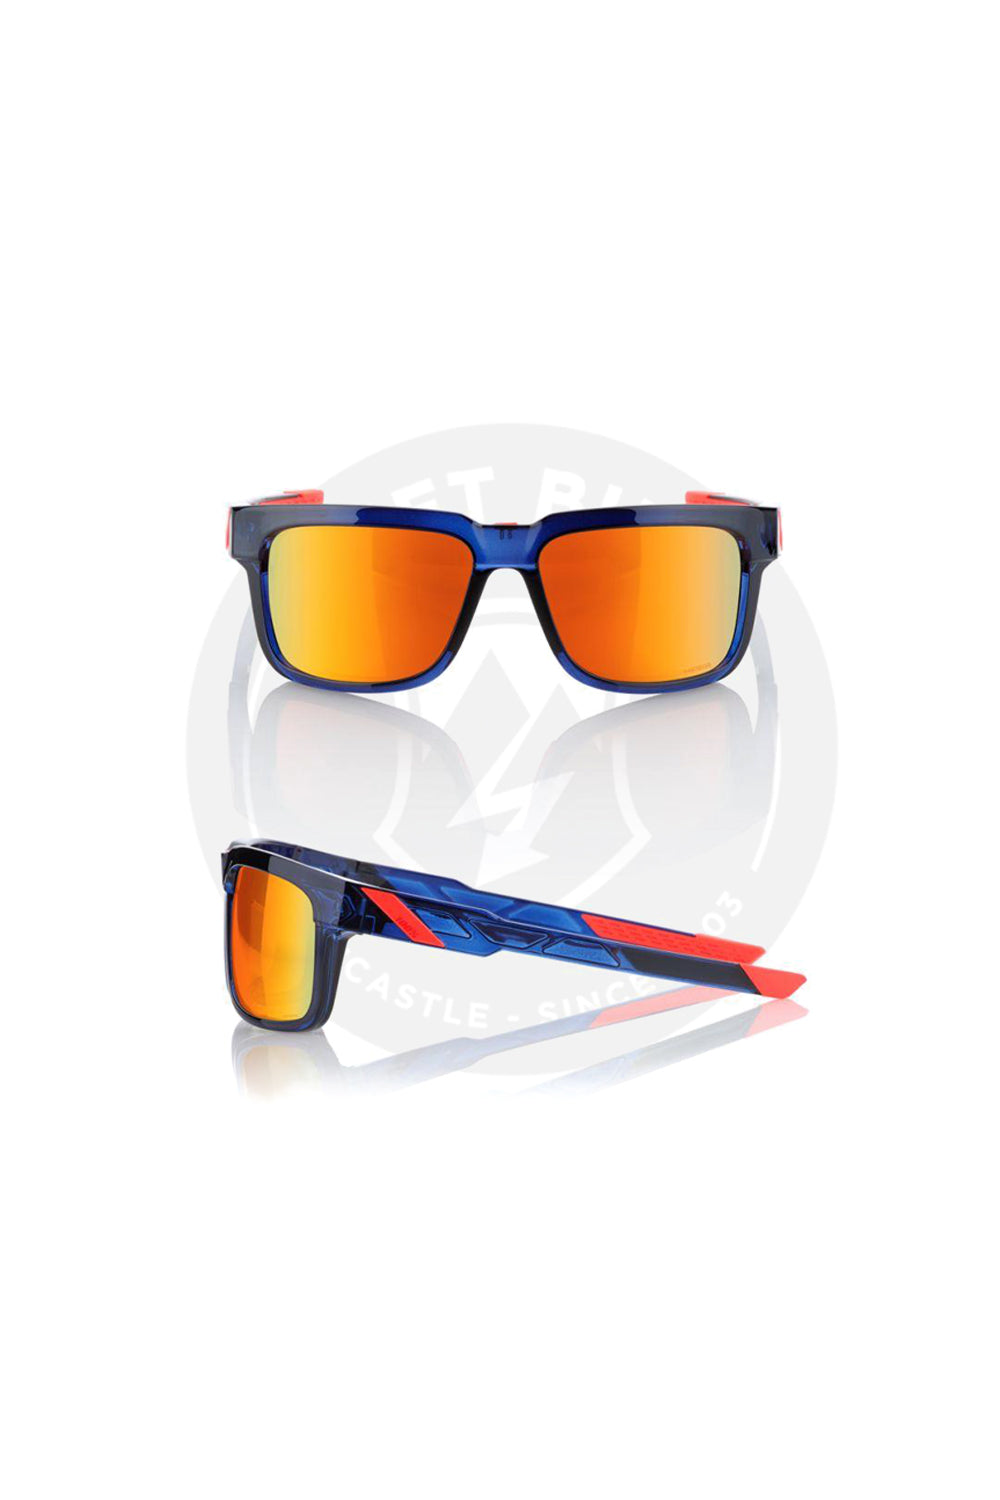 100% TYPE-S SUN GLASSES ANTHEM HiPER RED MULTILAYER MIRROR LENS